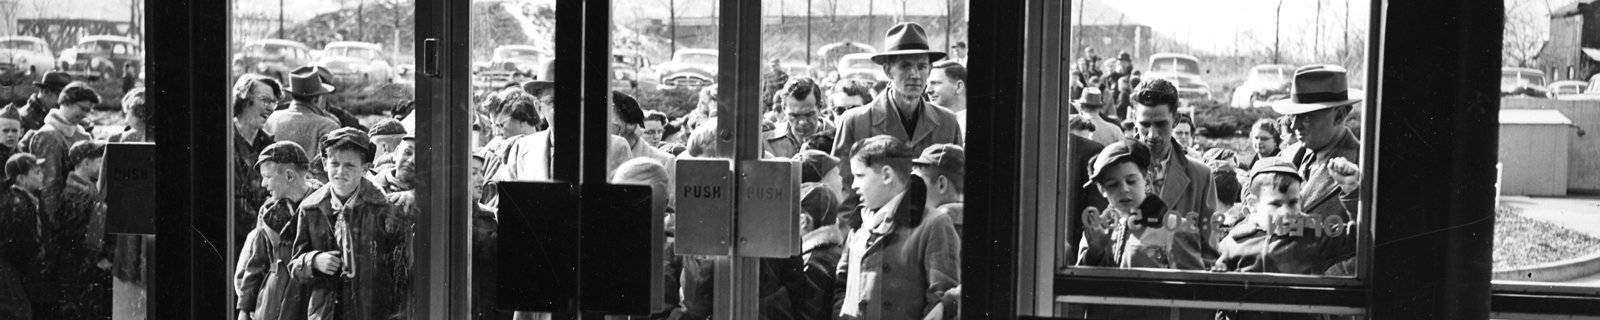 Opening day: May 19, 1951.